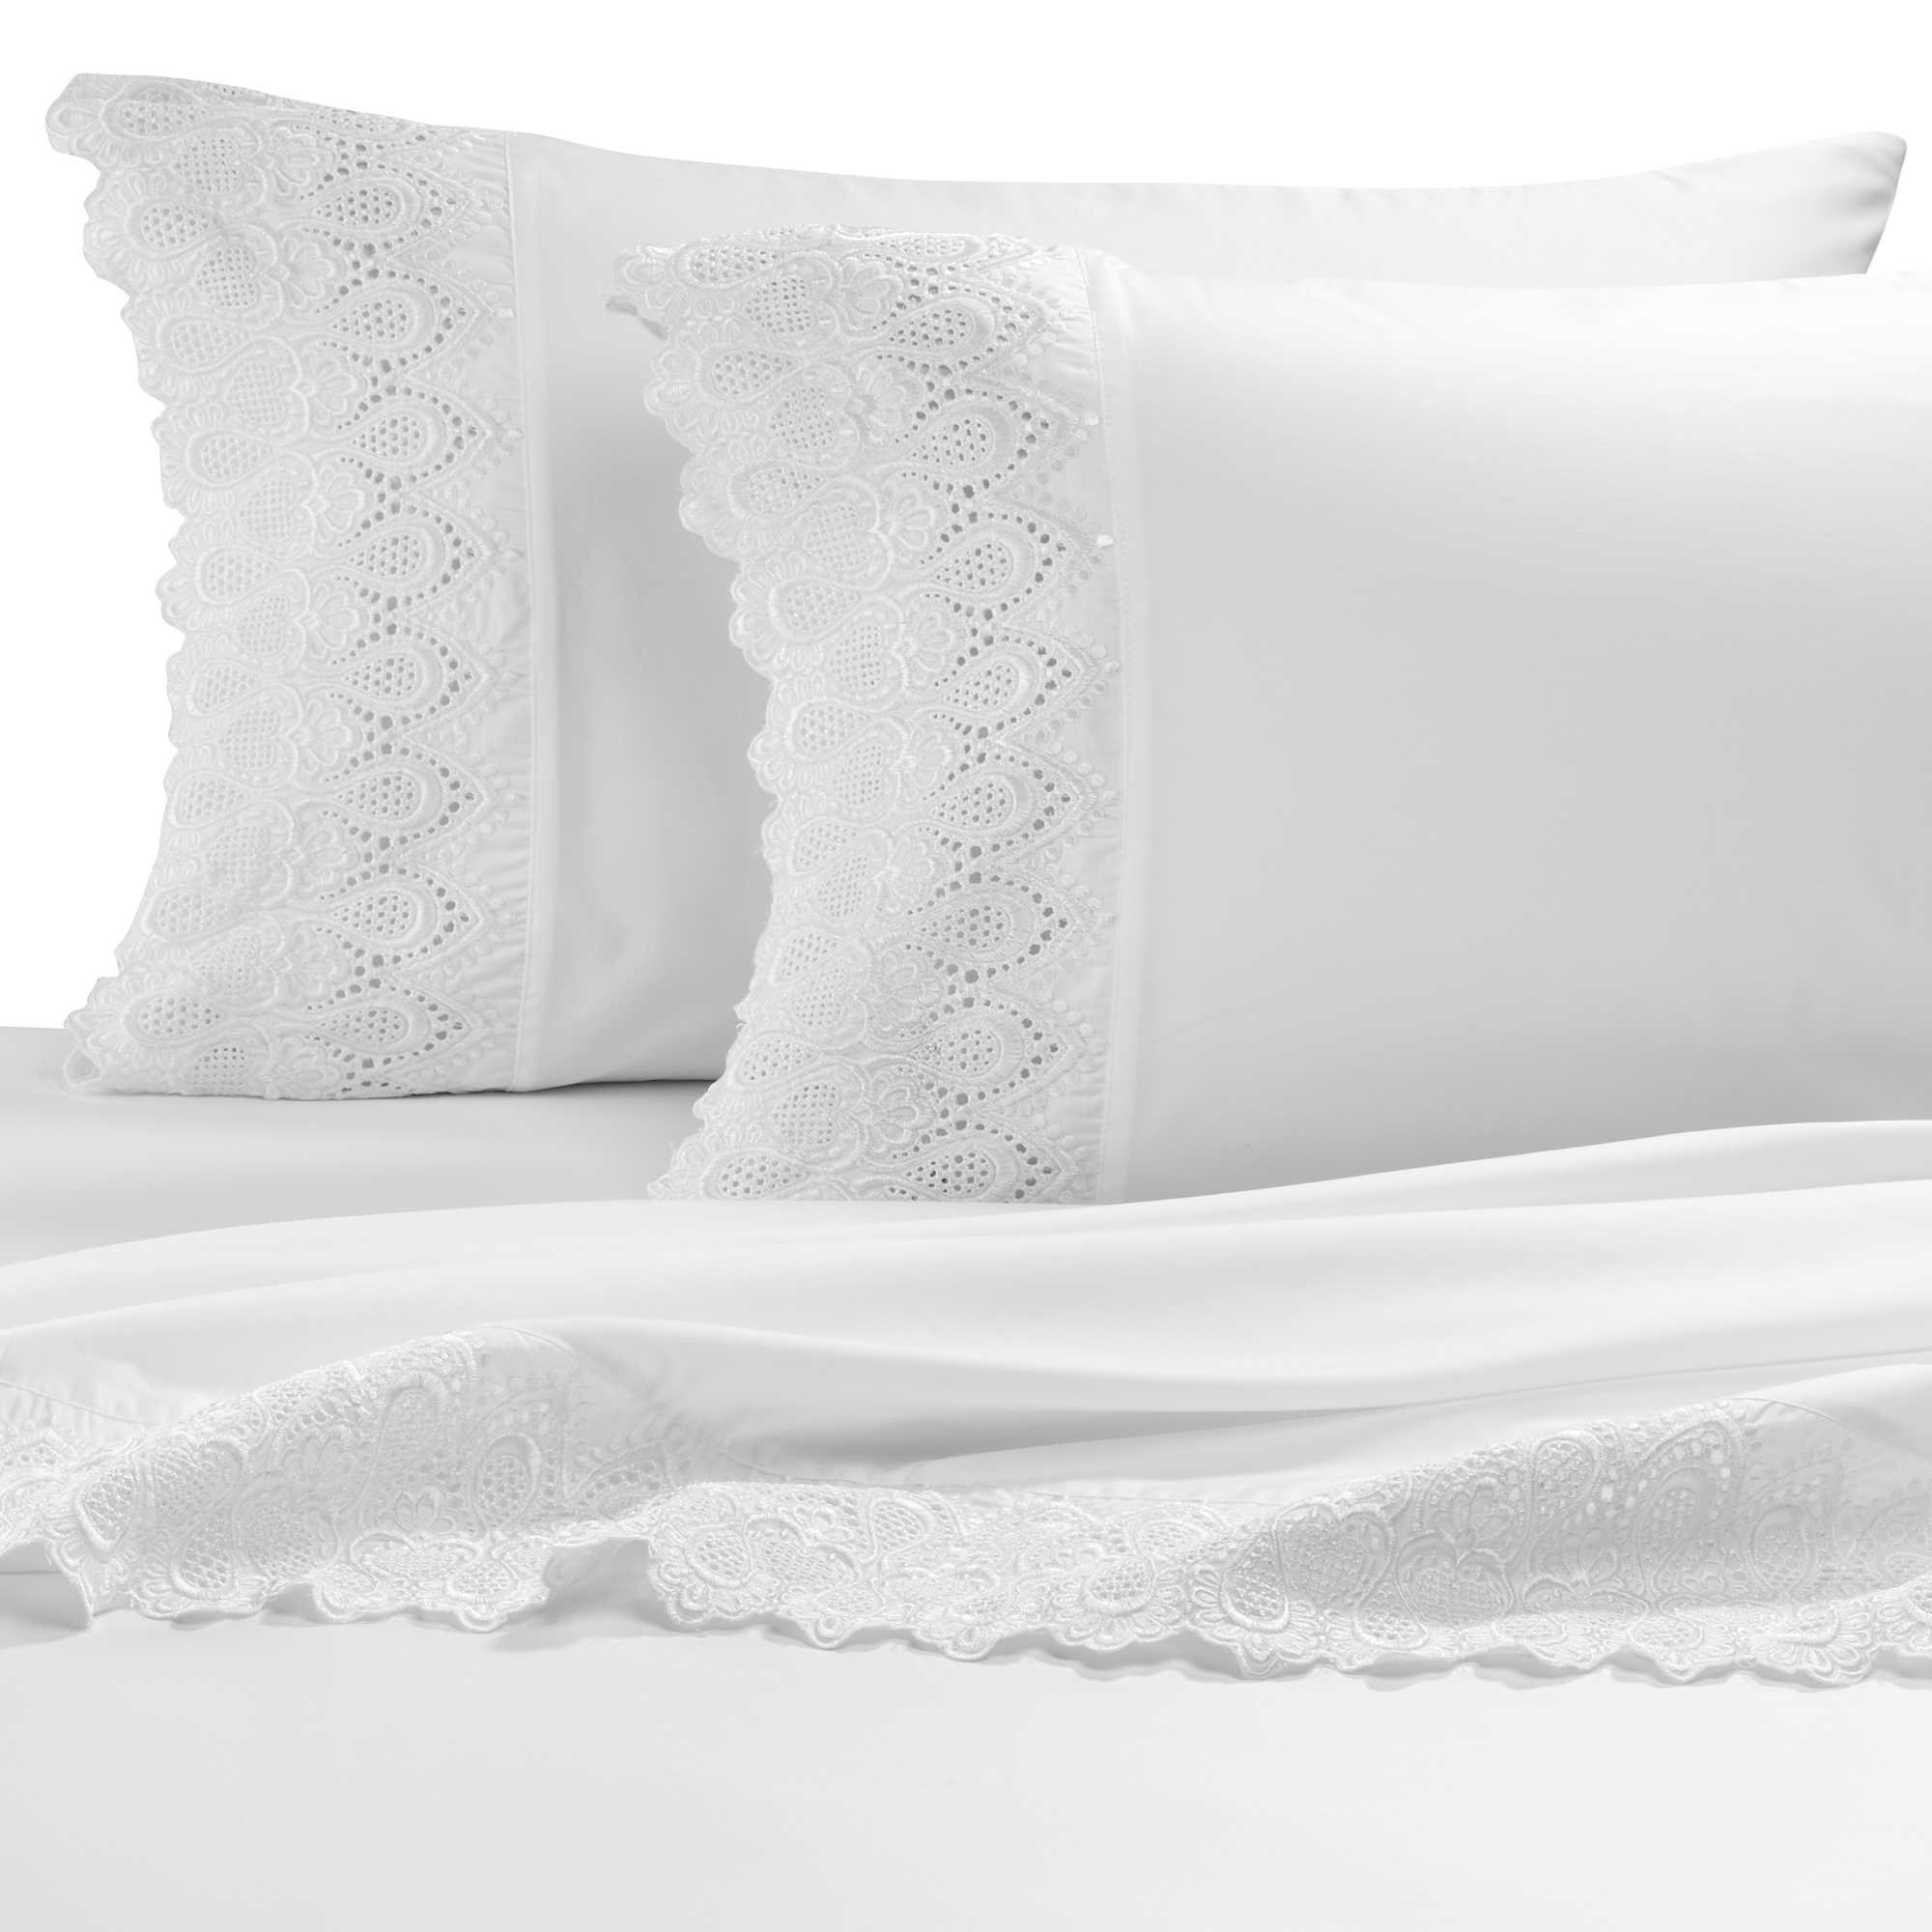 AURAA Smart 600 Thread Count Cotton Rich, 4 Piece Sheet Set, Queen Sheets, 16'' Deep Pocket, LACE Hem, Smooth & Soft Sateen Weave, Hotel Quality, White